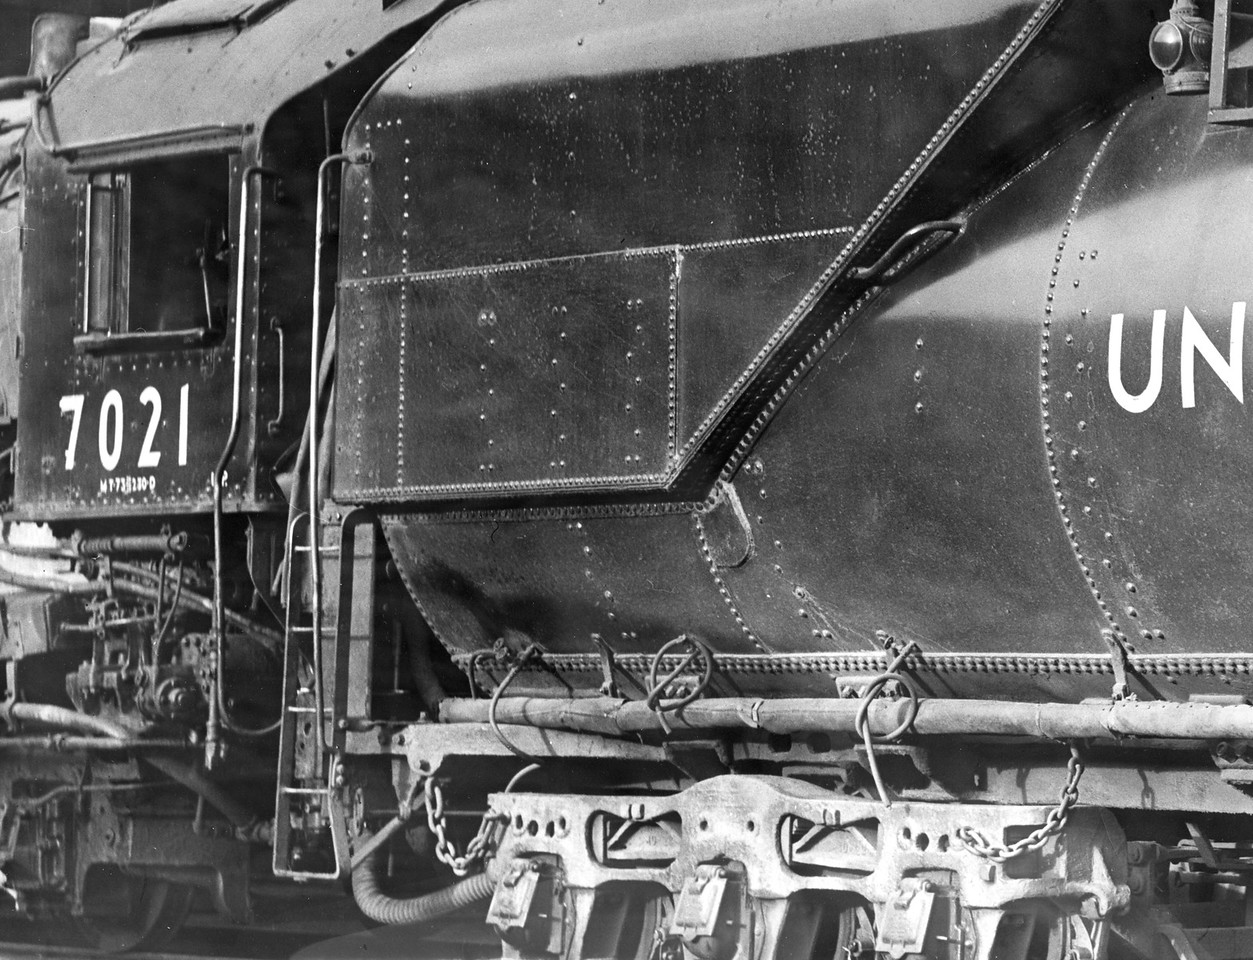 up_4-8-2_7021-tender_sep-4-1939_r-h-kindig-photo_dave-england-collection